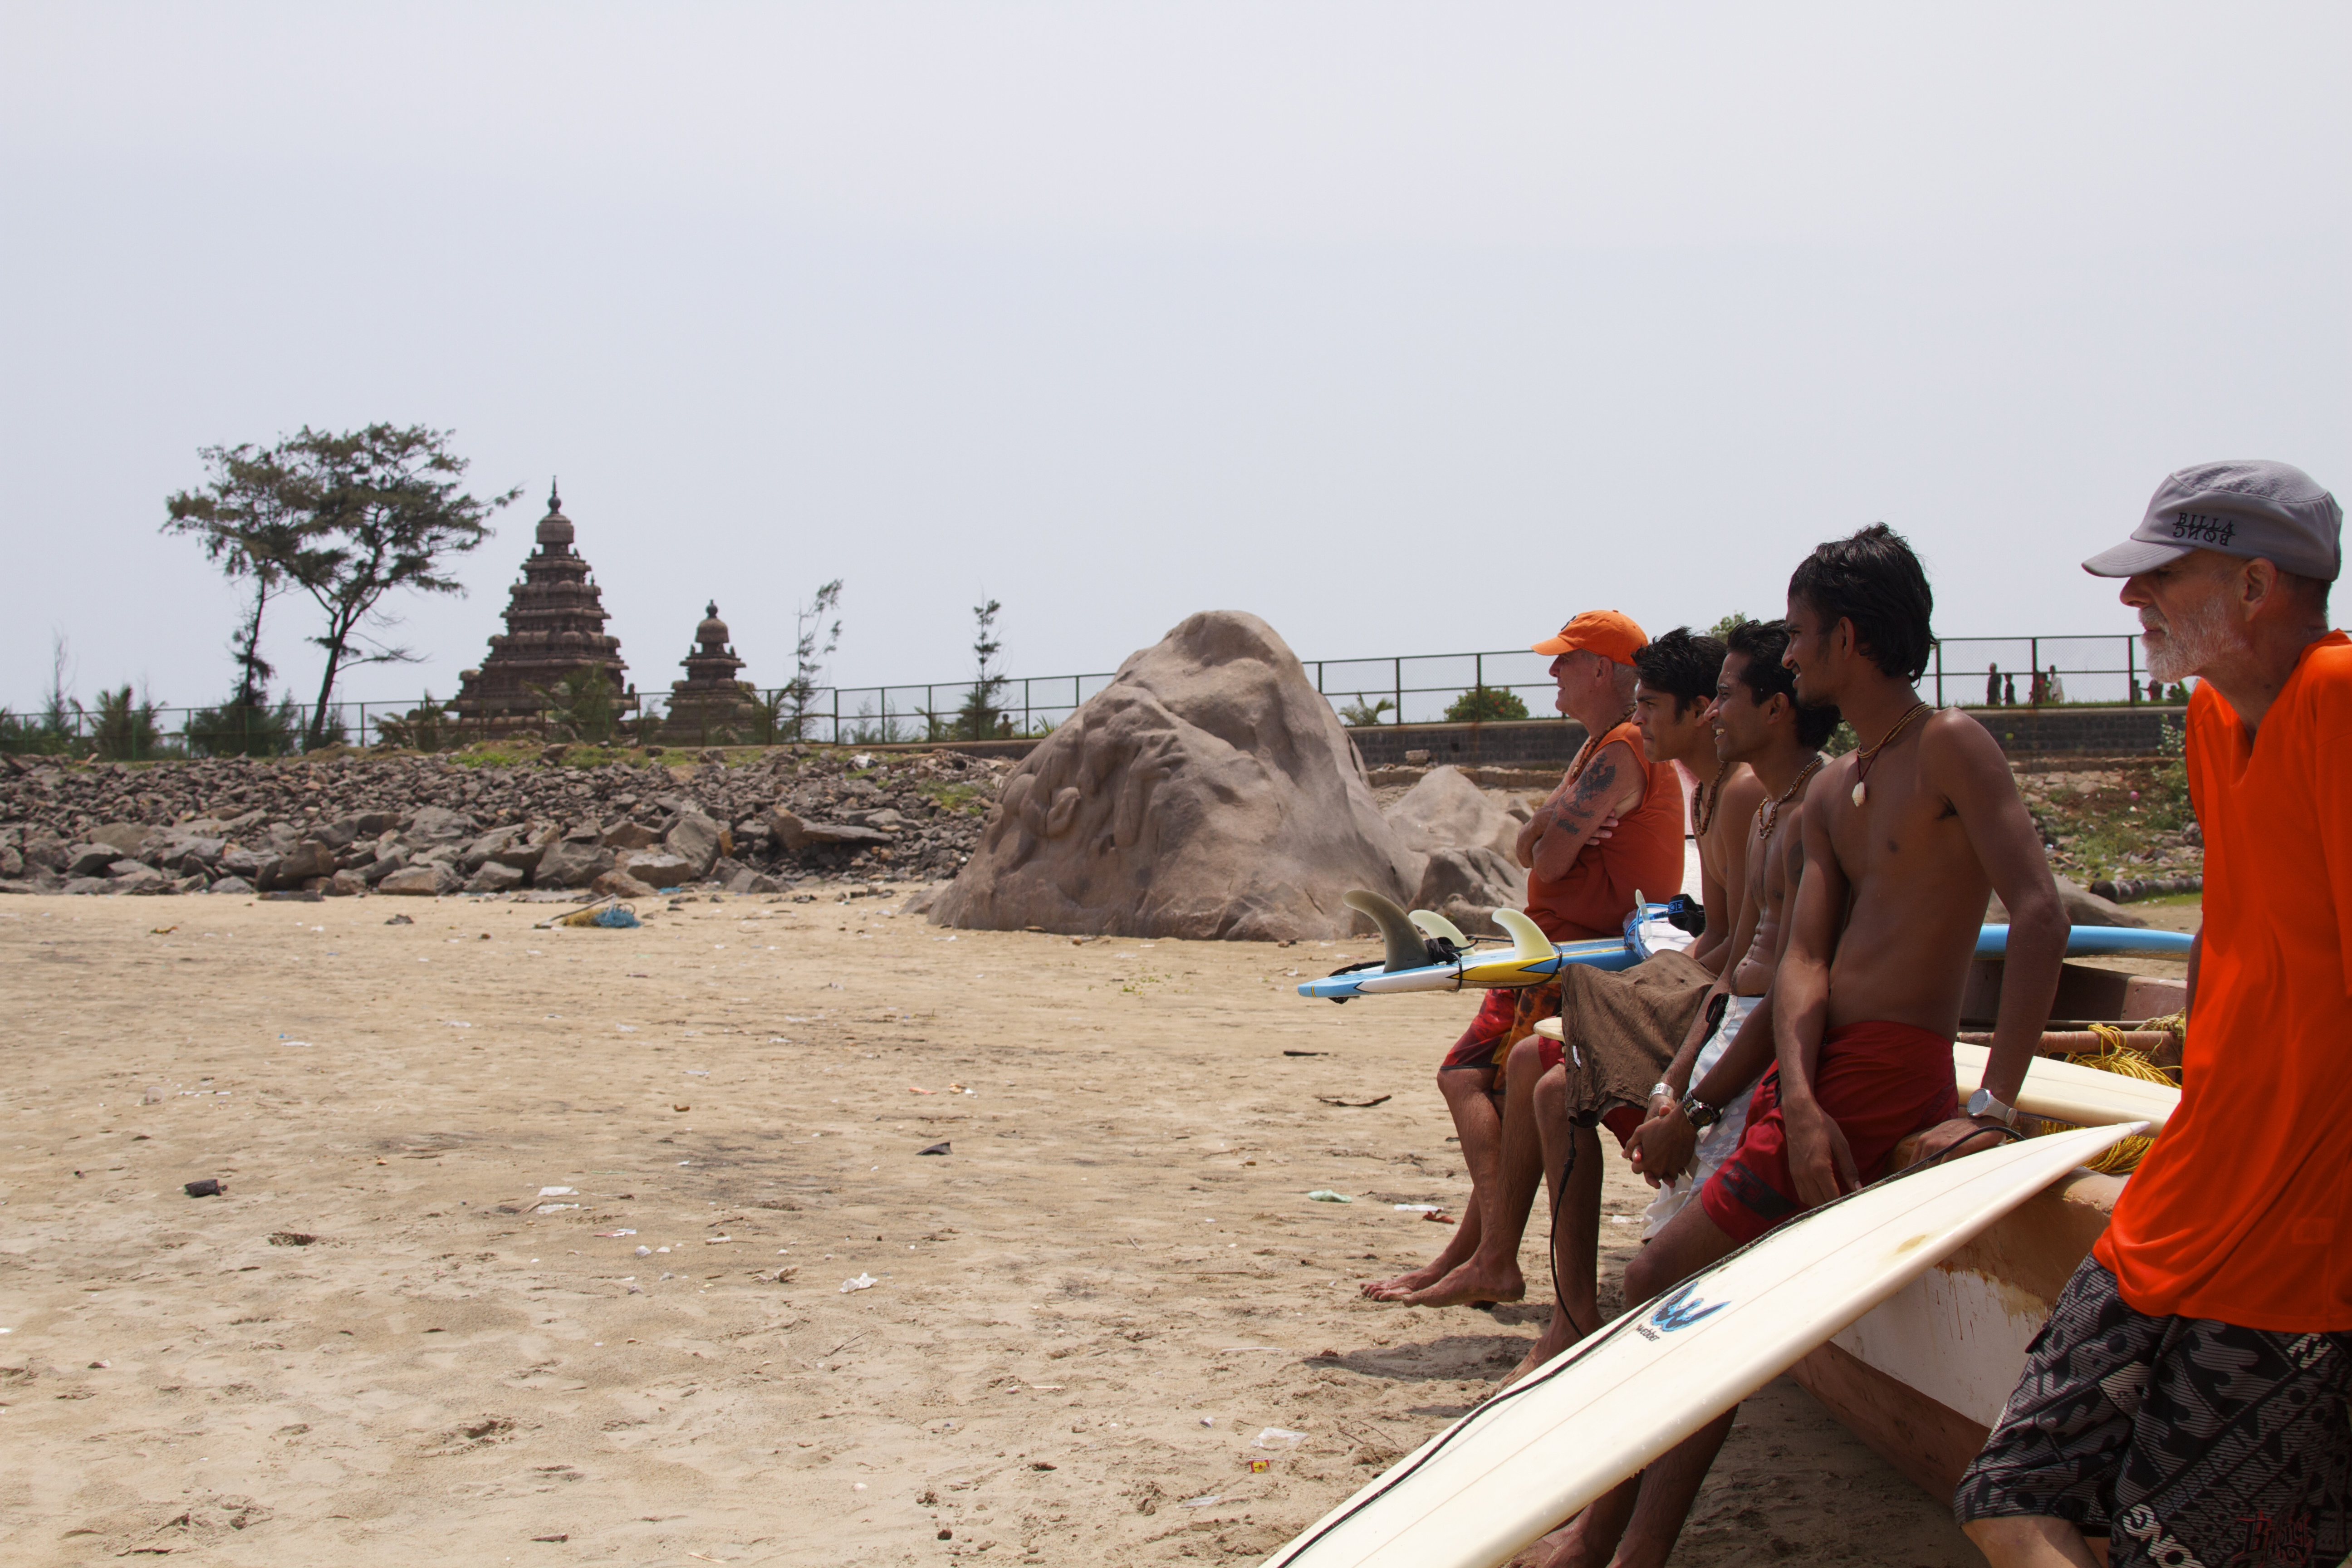 Members of Mantra Surf Club checking the waves. Photo: Rammohan Paranjape